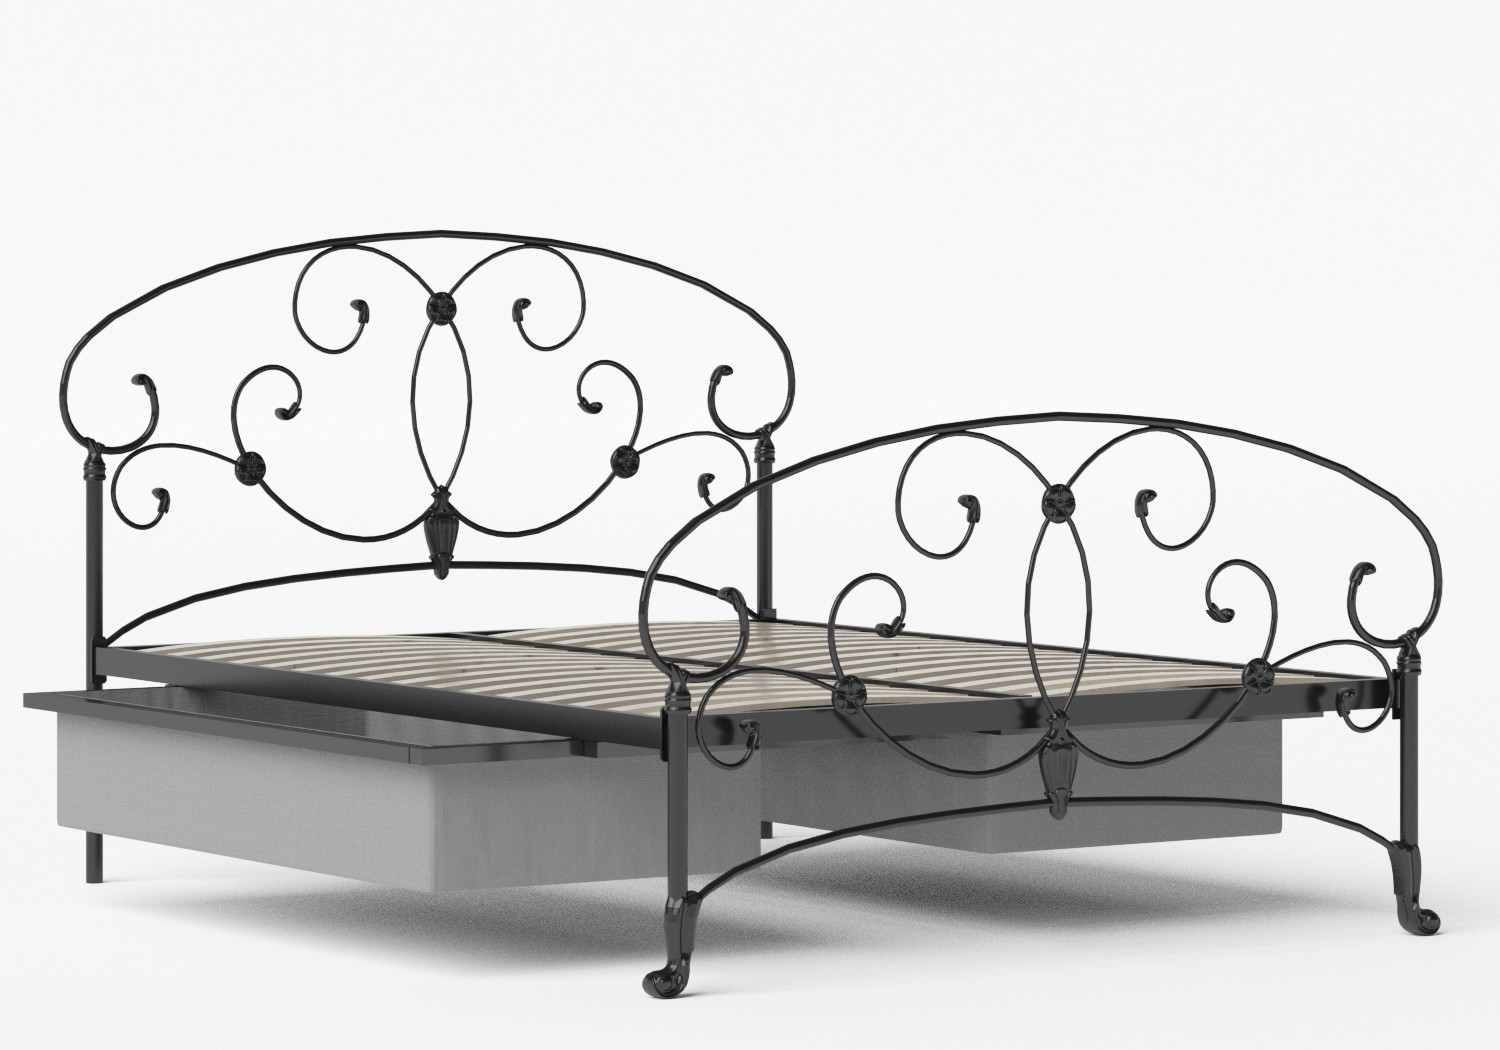 Arigna Iron/Metal Bed in Satin Black shown with underbed storage